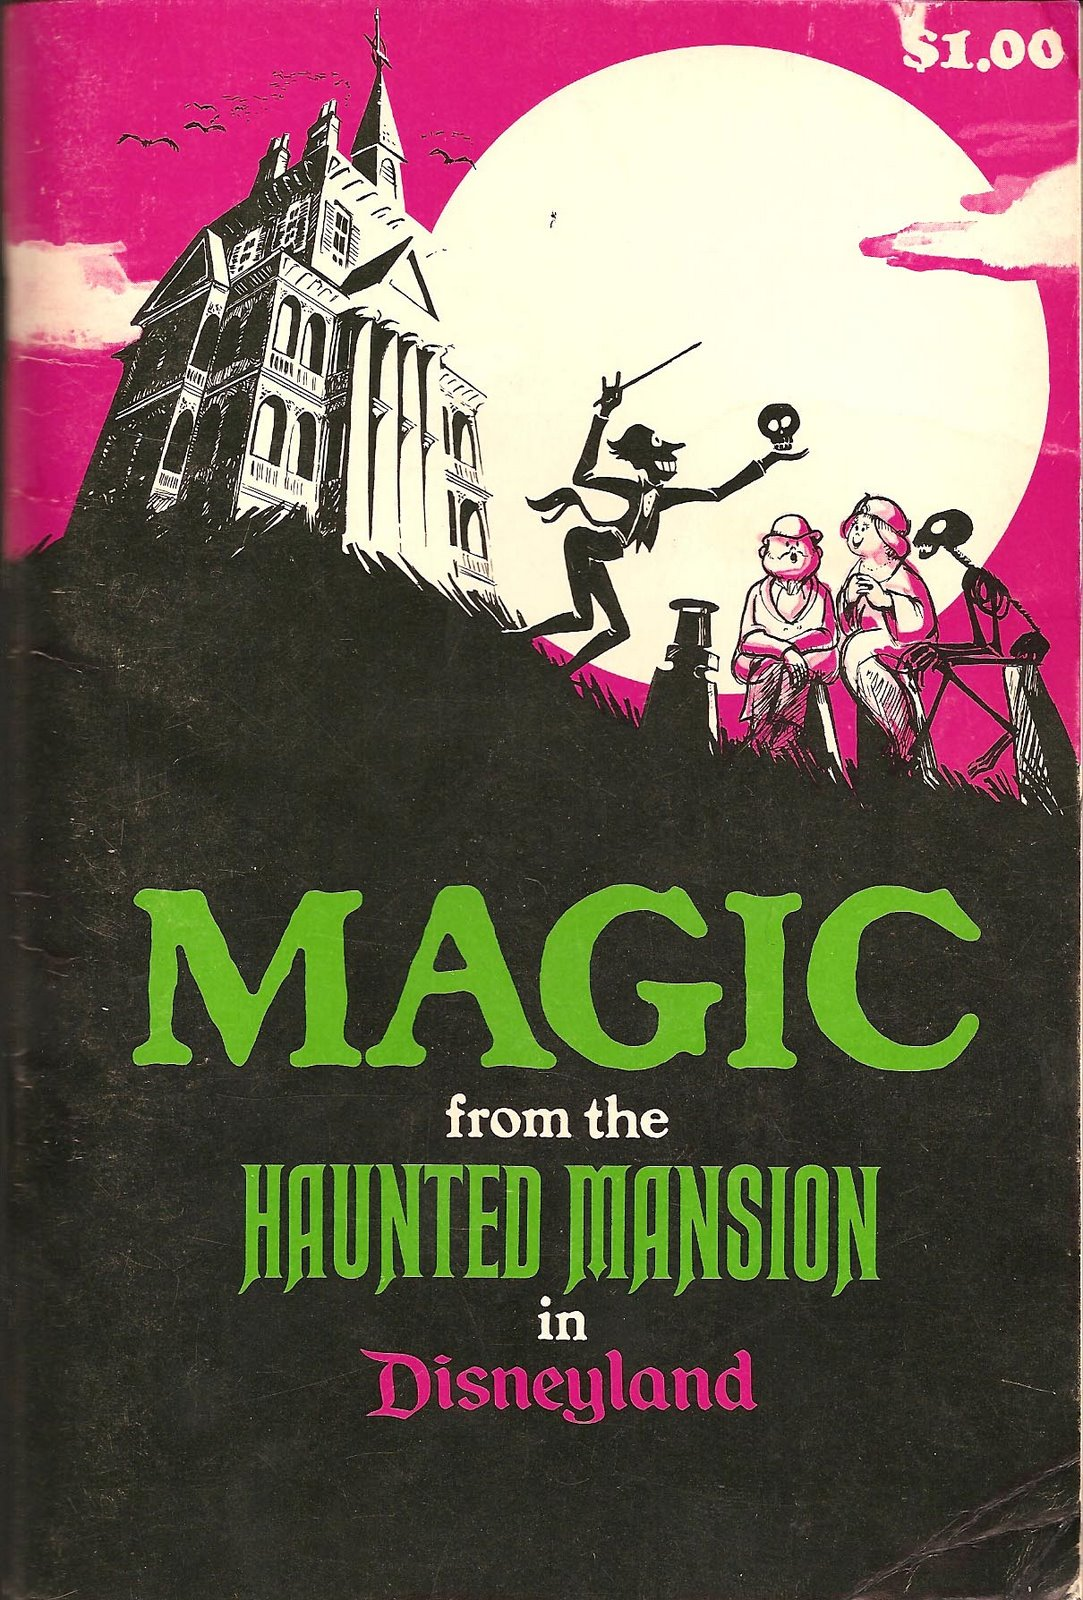 Magic from the Haunted Mansion